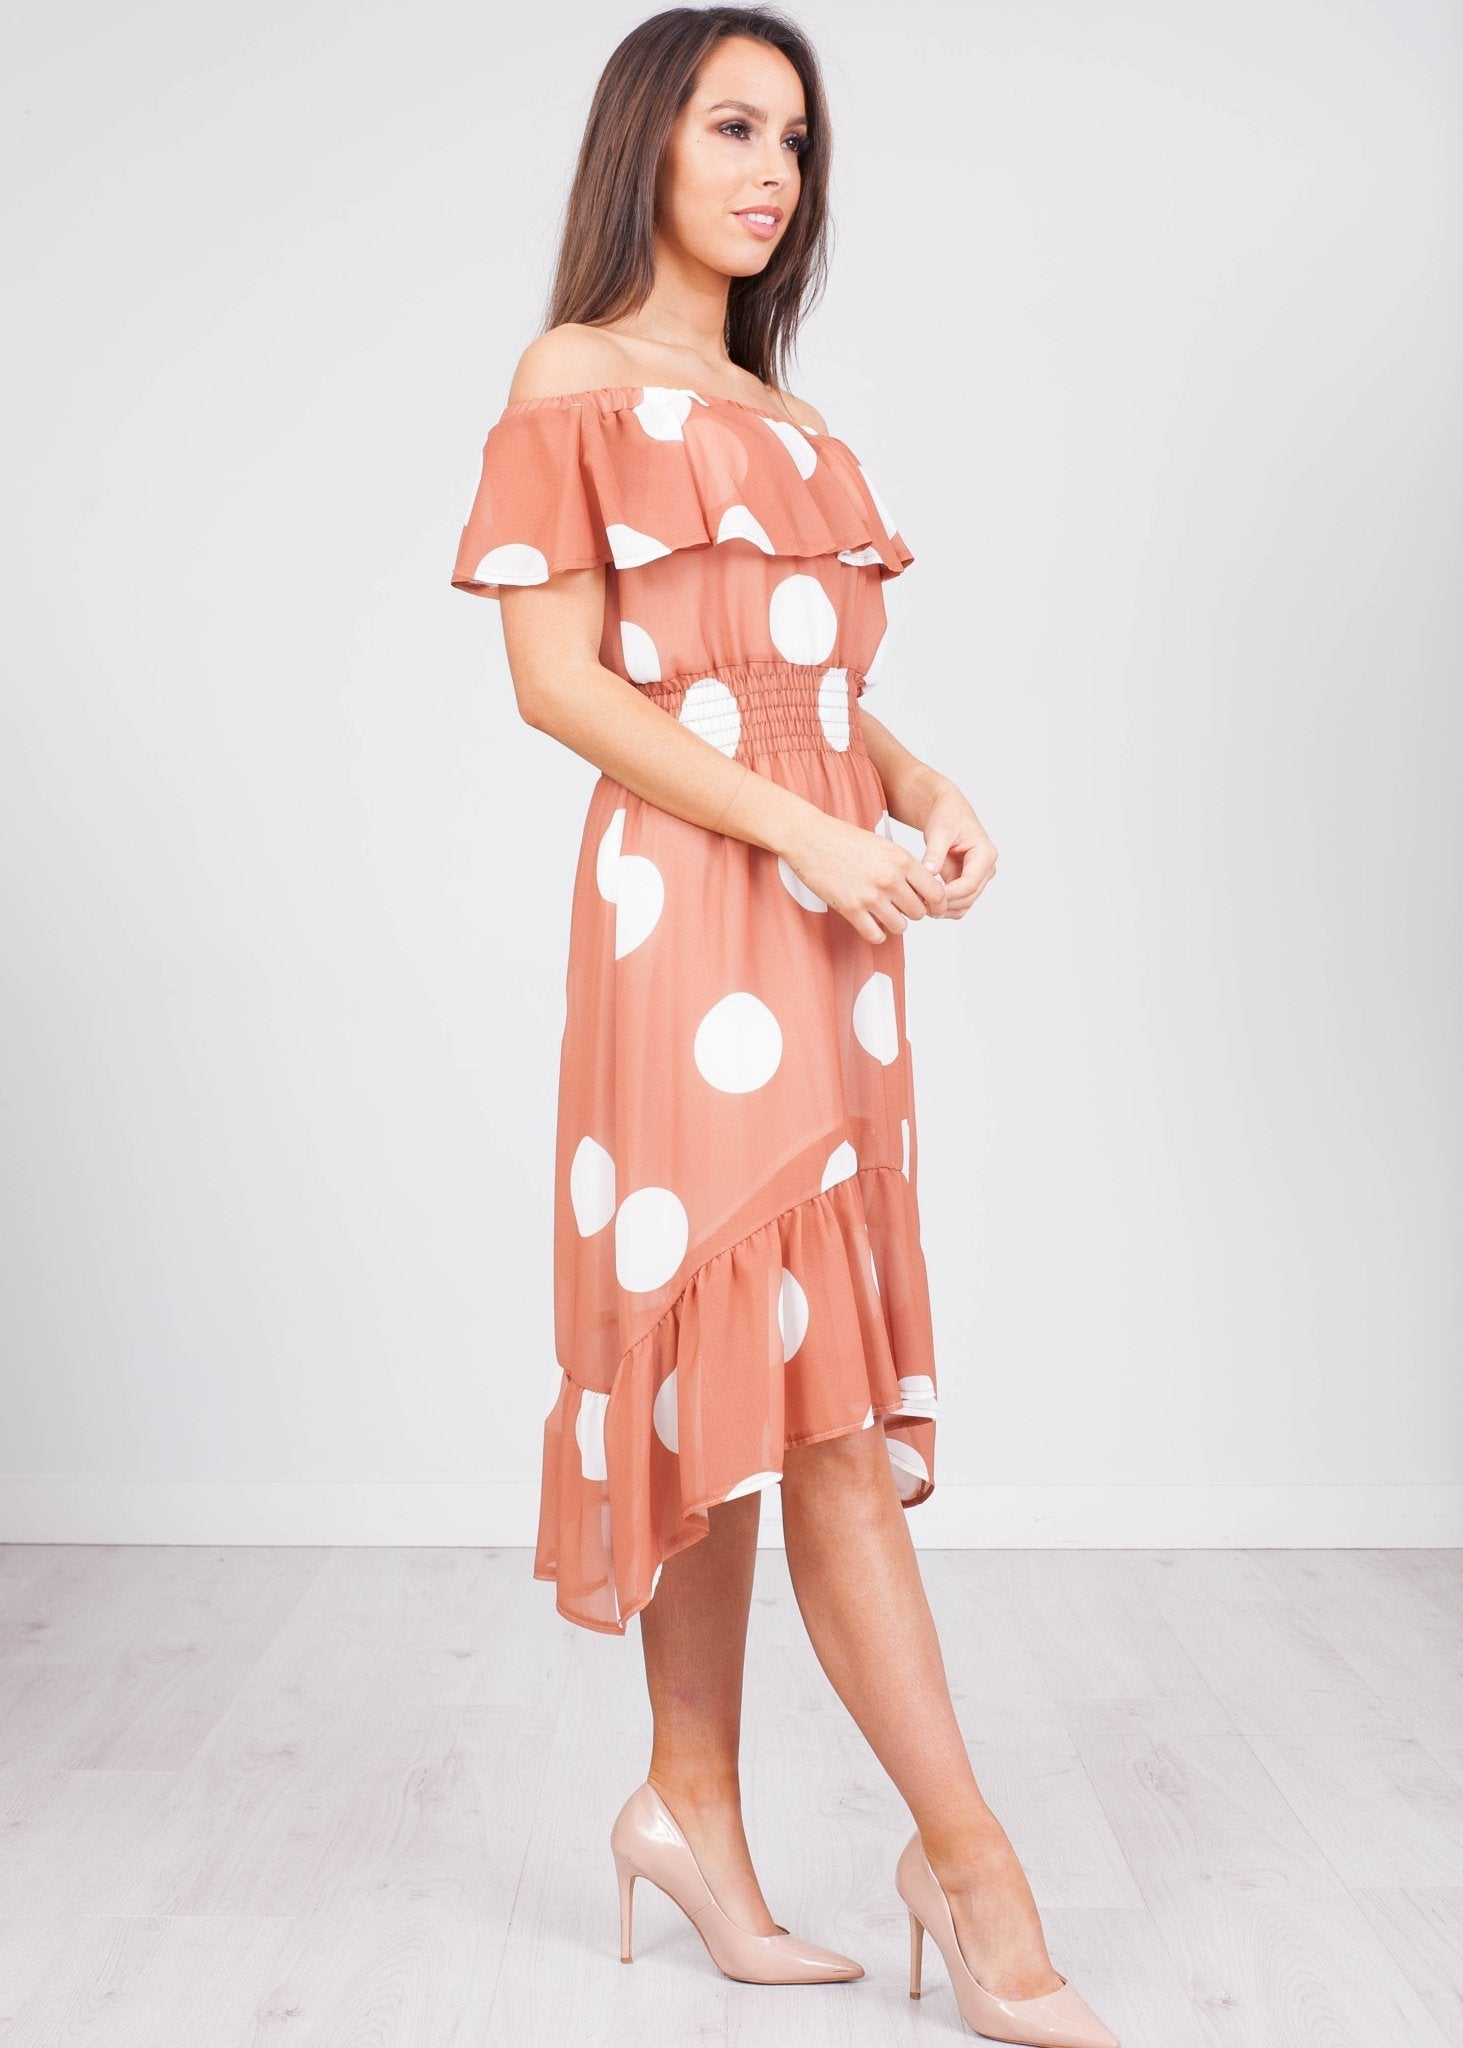 Tina Spotty Dress - The Walk in Wardrobe